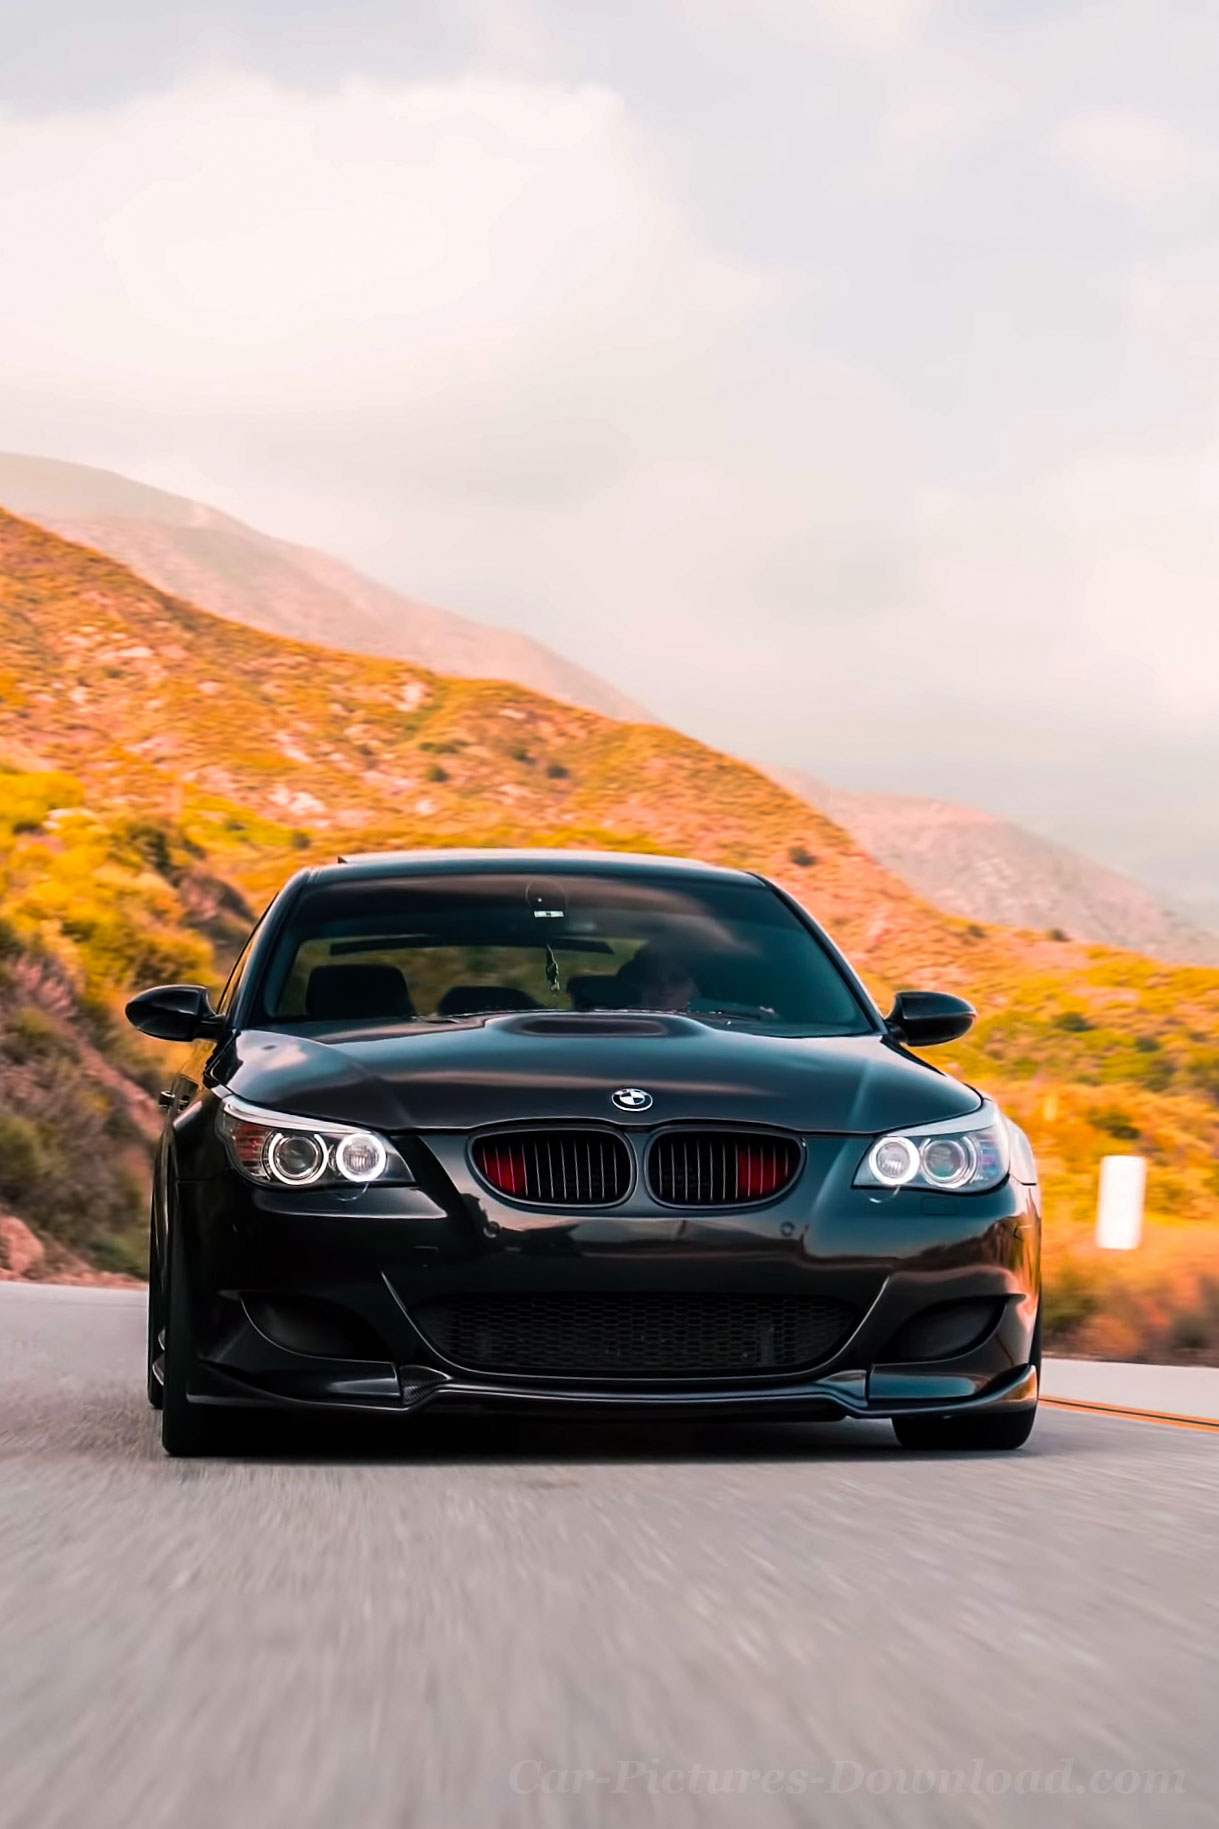 BMW M5 Wallpaper Images   PC Mobile Device   Picture Download 1219x1829